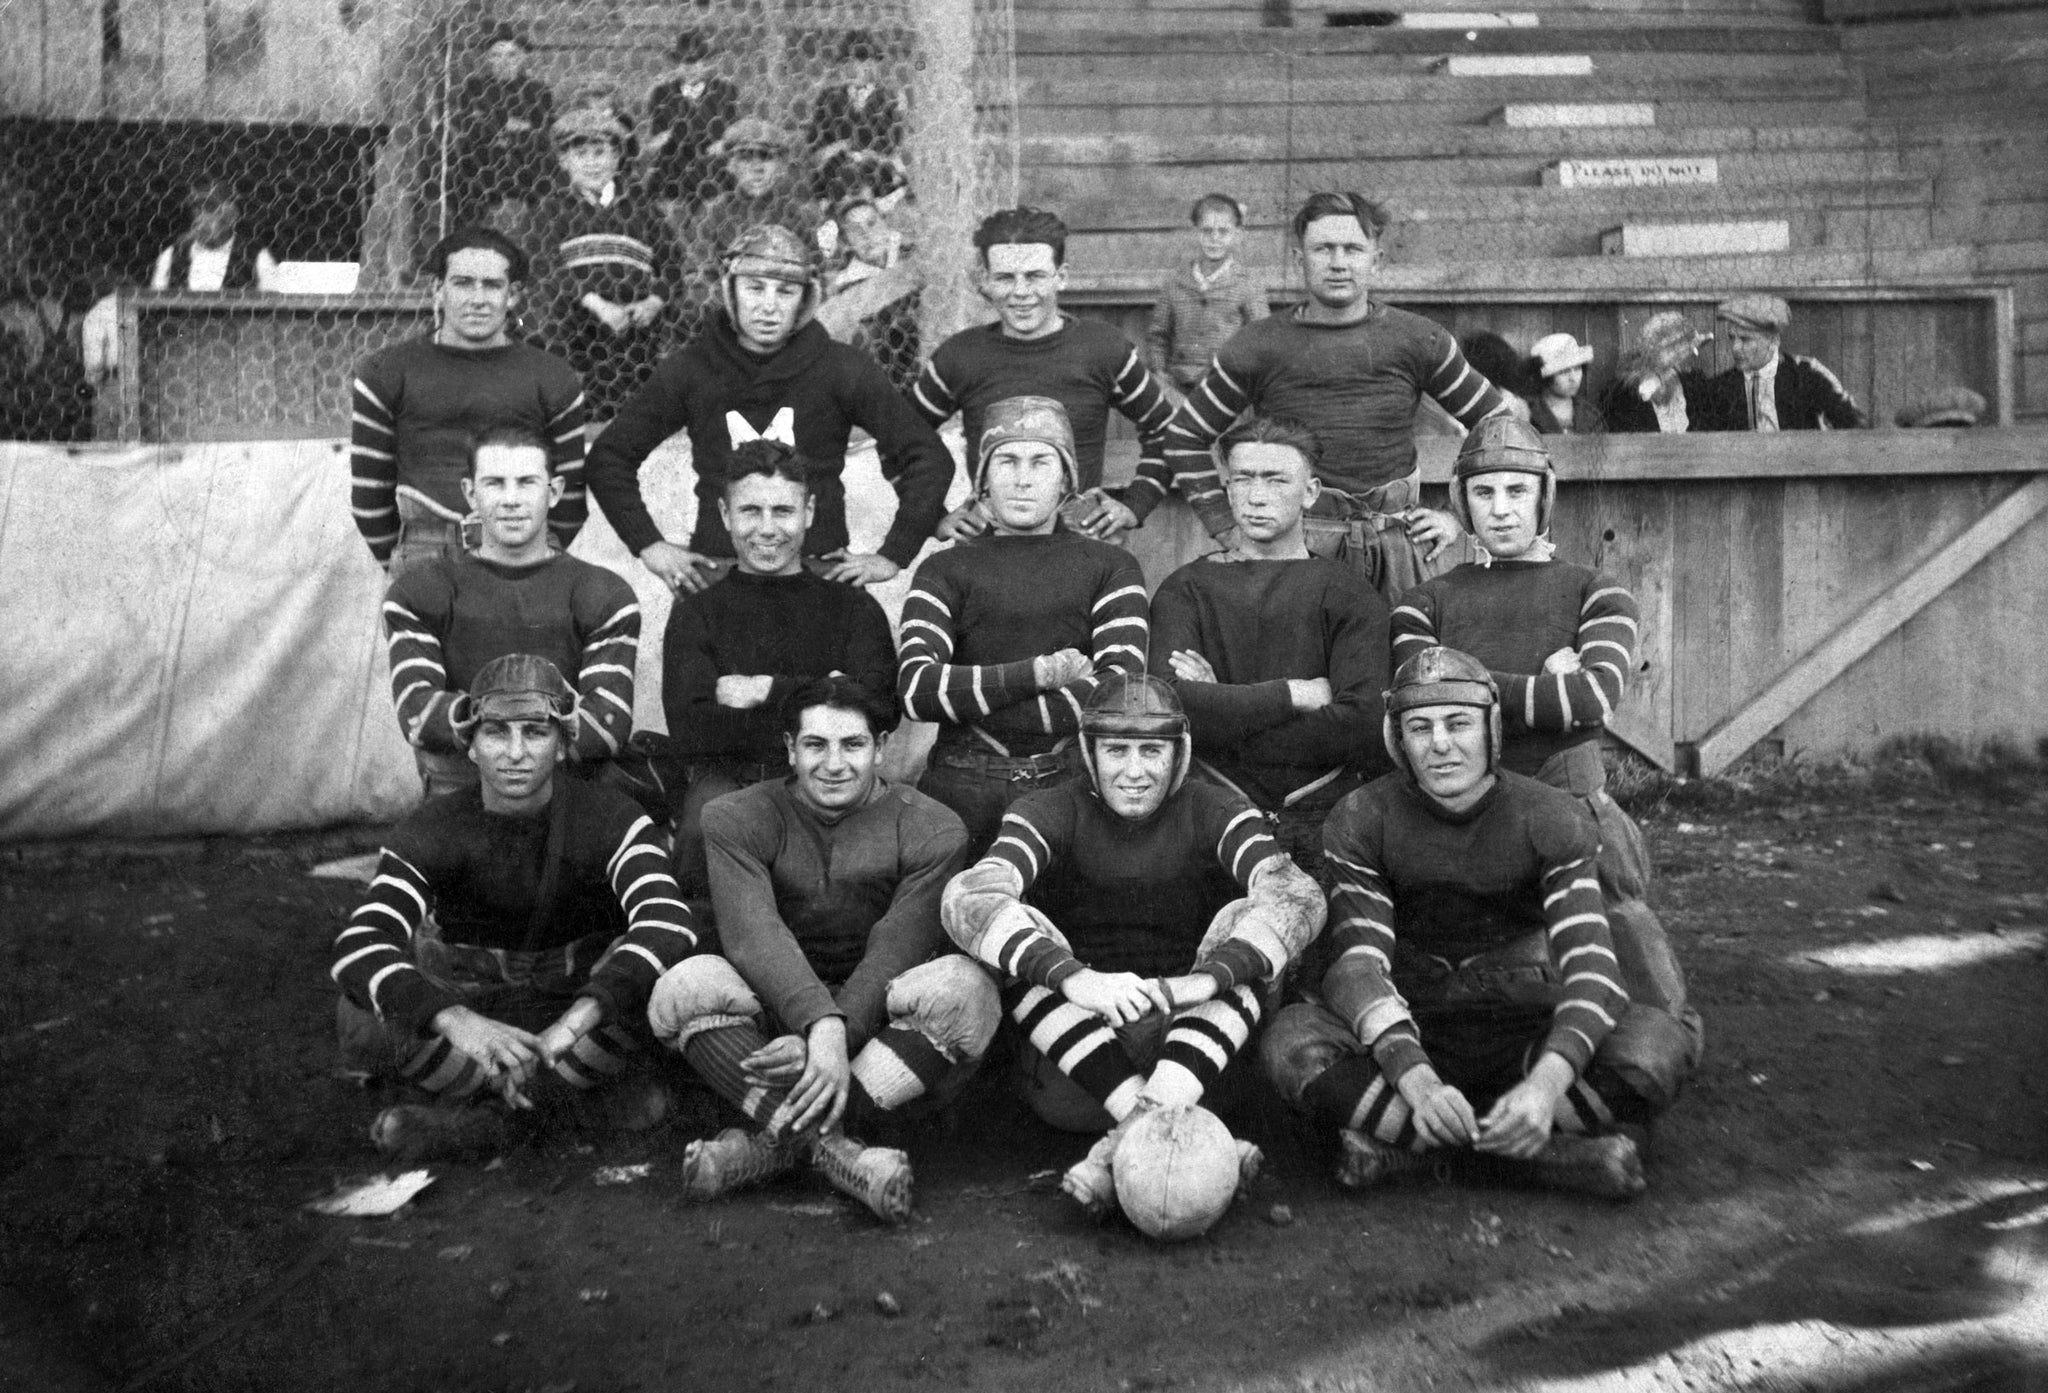 The Junior Moose football squad, 1920. Front row, from left: Antoine Johnson, Albert Strazzo, George Boyle, Richard Terret. Middle row: Dick Boyle, Big Fountain, Vince Walsh, Allie Kenworthy, Leo Little. Back row: Mike Malstead, Norman Seeney, Bert Killerb, Frank Peters. -- Courtesy of the Vallejo Naval and Historical Museum